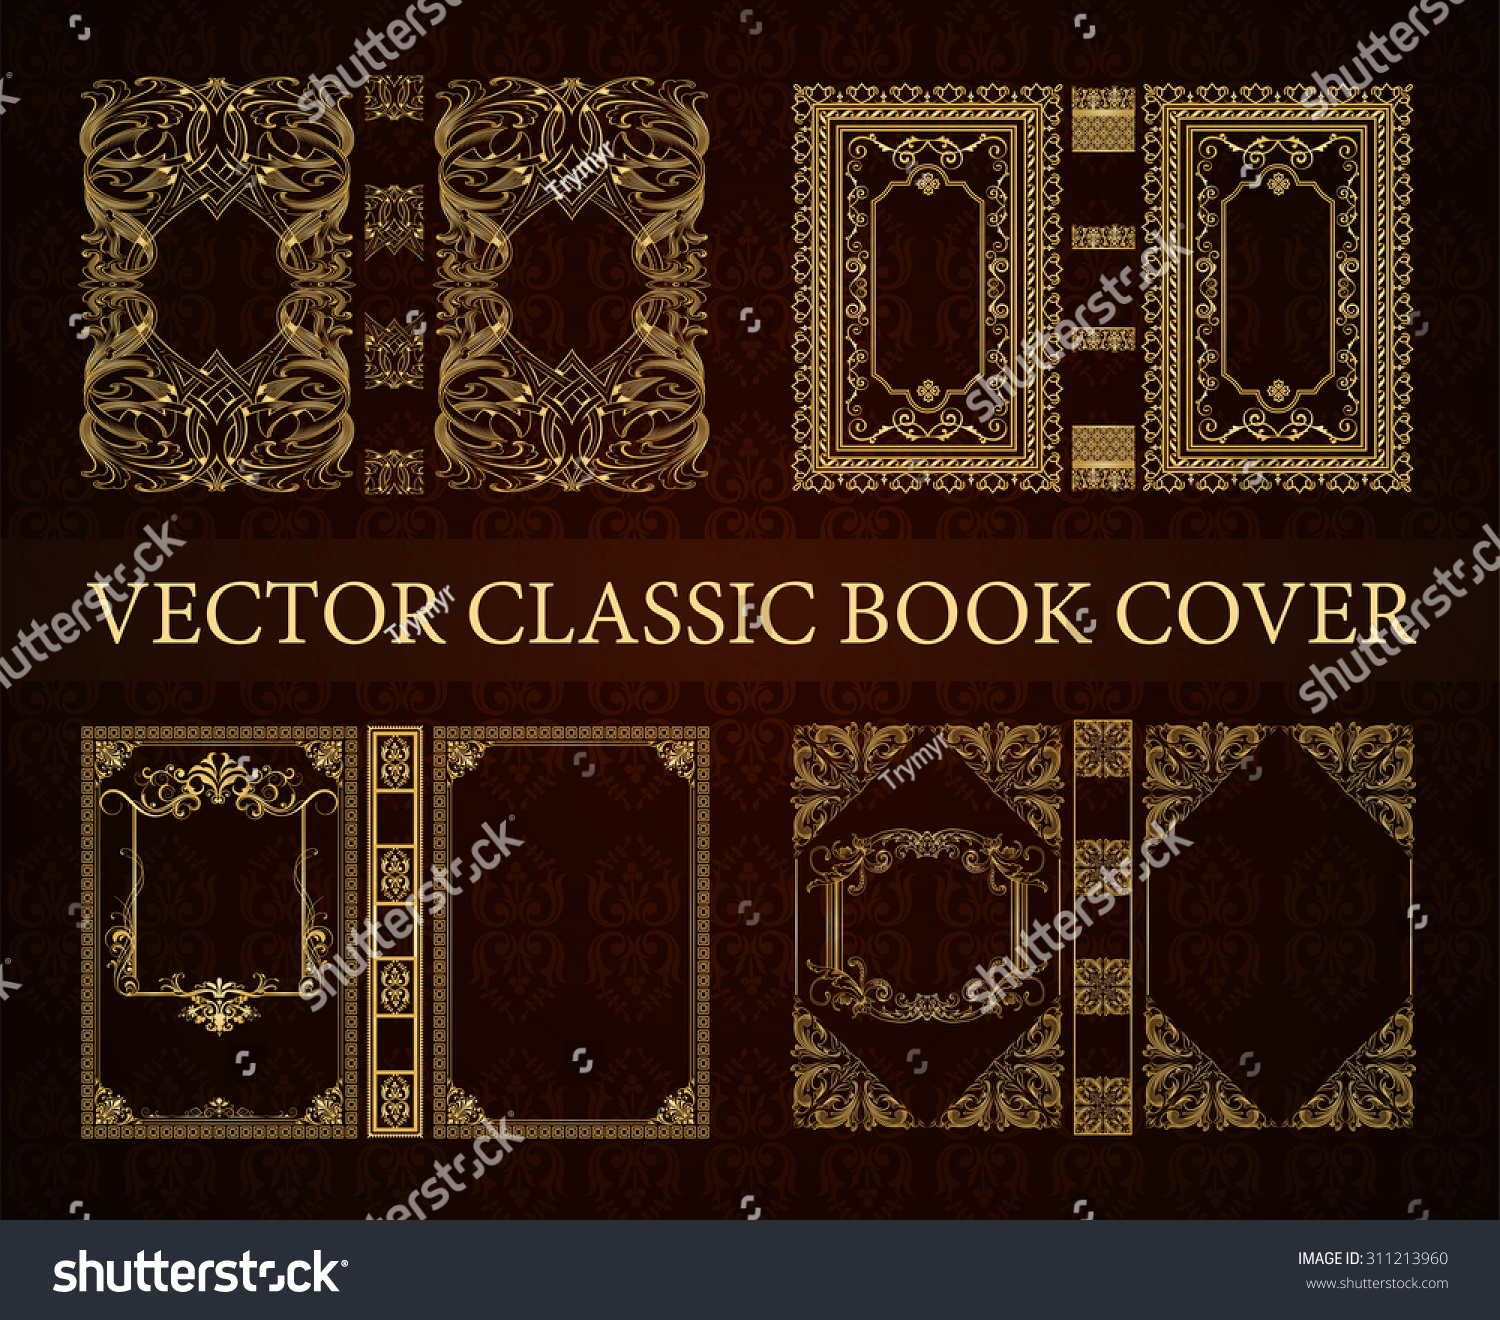 Illustrated Book Cover Vector : Vector set classical book cover decorative vintage frame